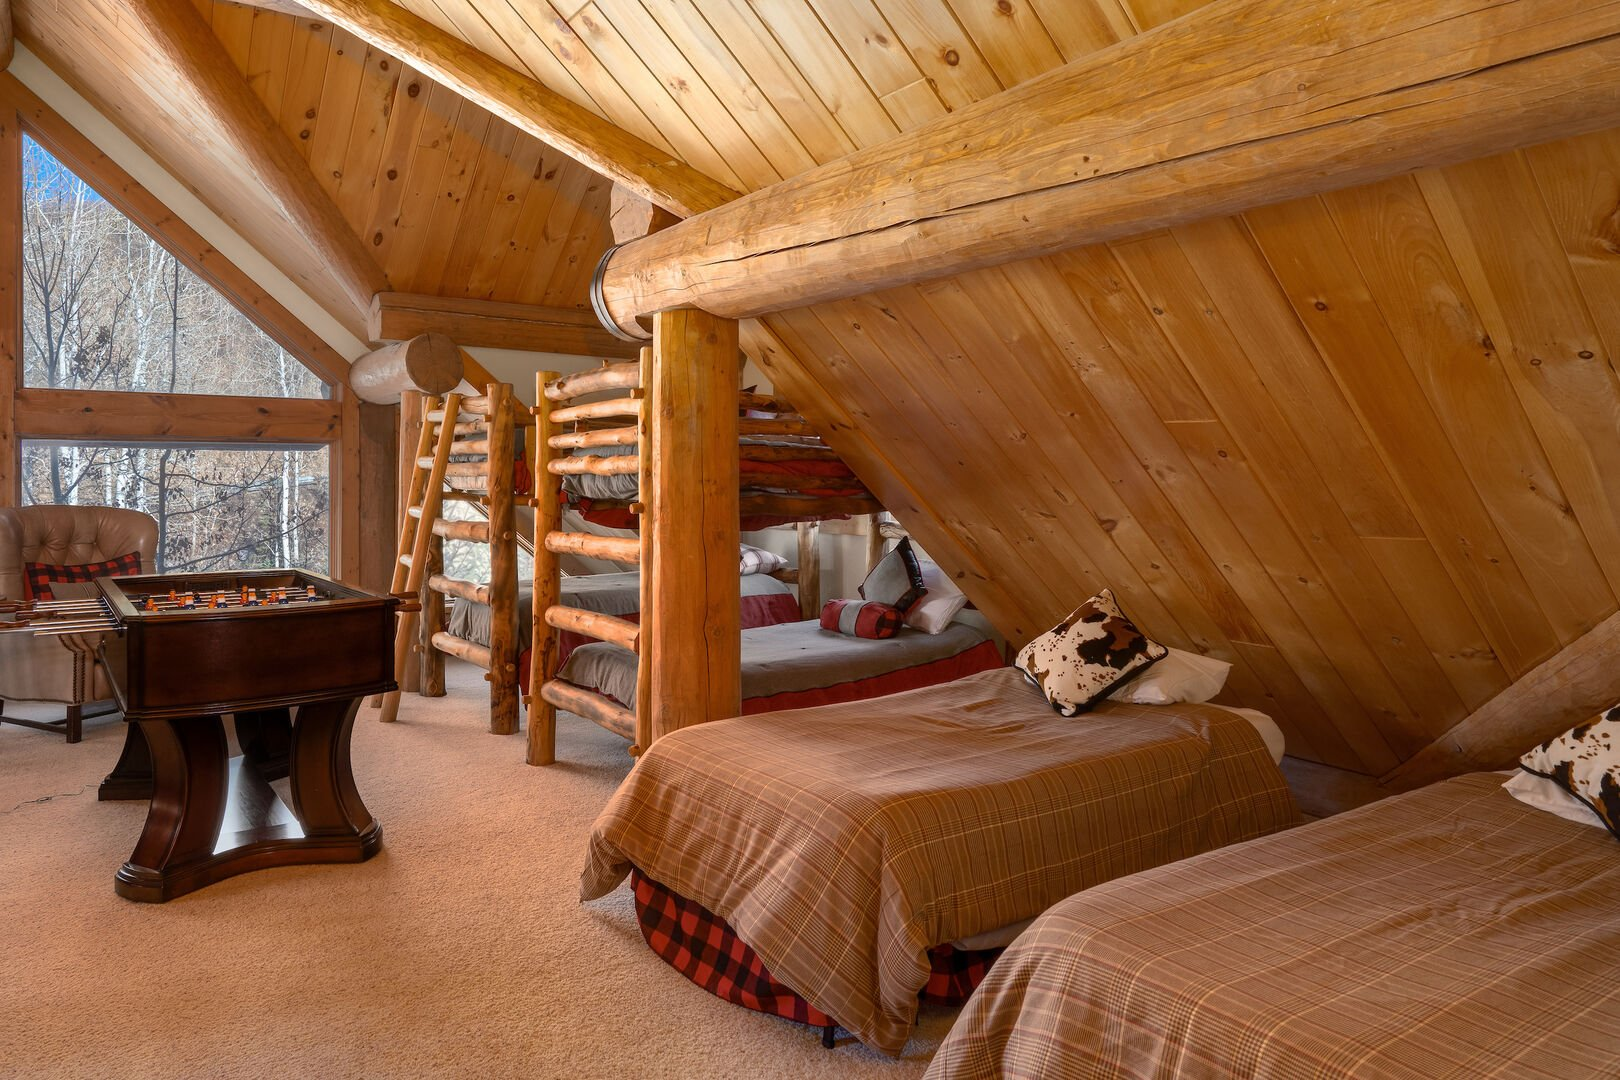 Spacious loft area - 2 bunkbeds and 2 twin beds - sleeps 6 up here!